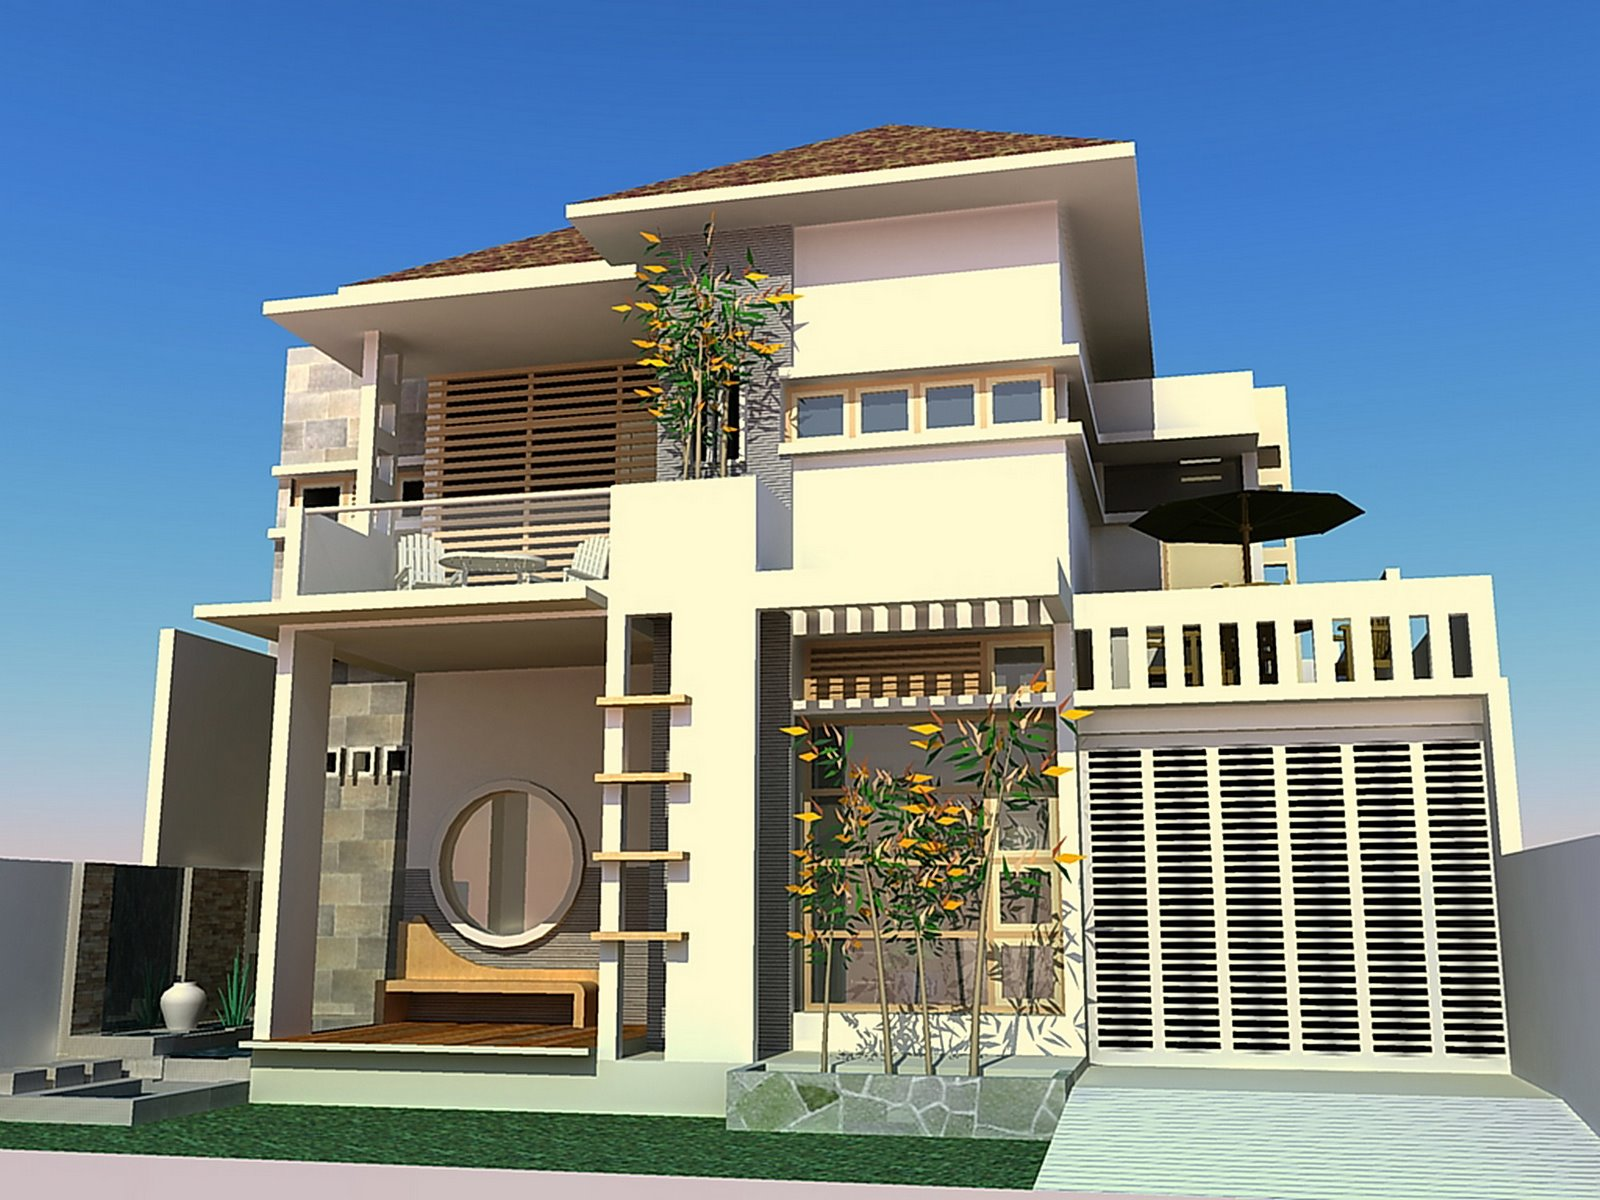 House design property external home design interior Modern home design ideas